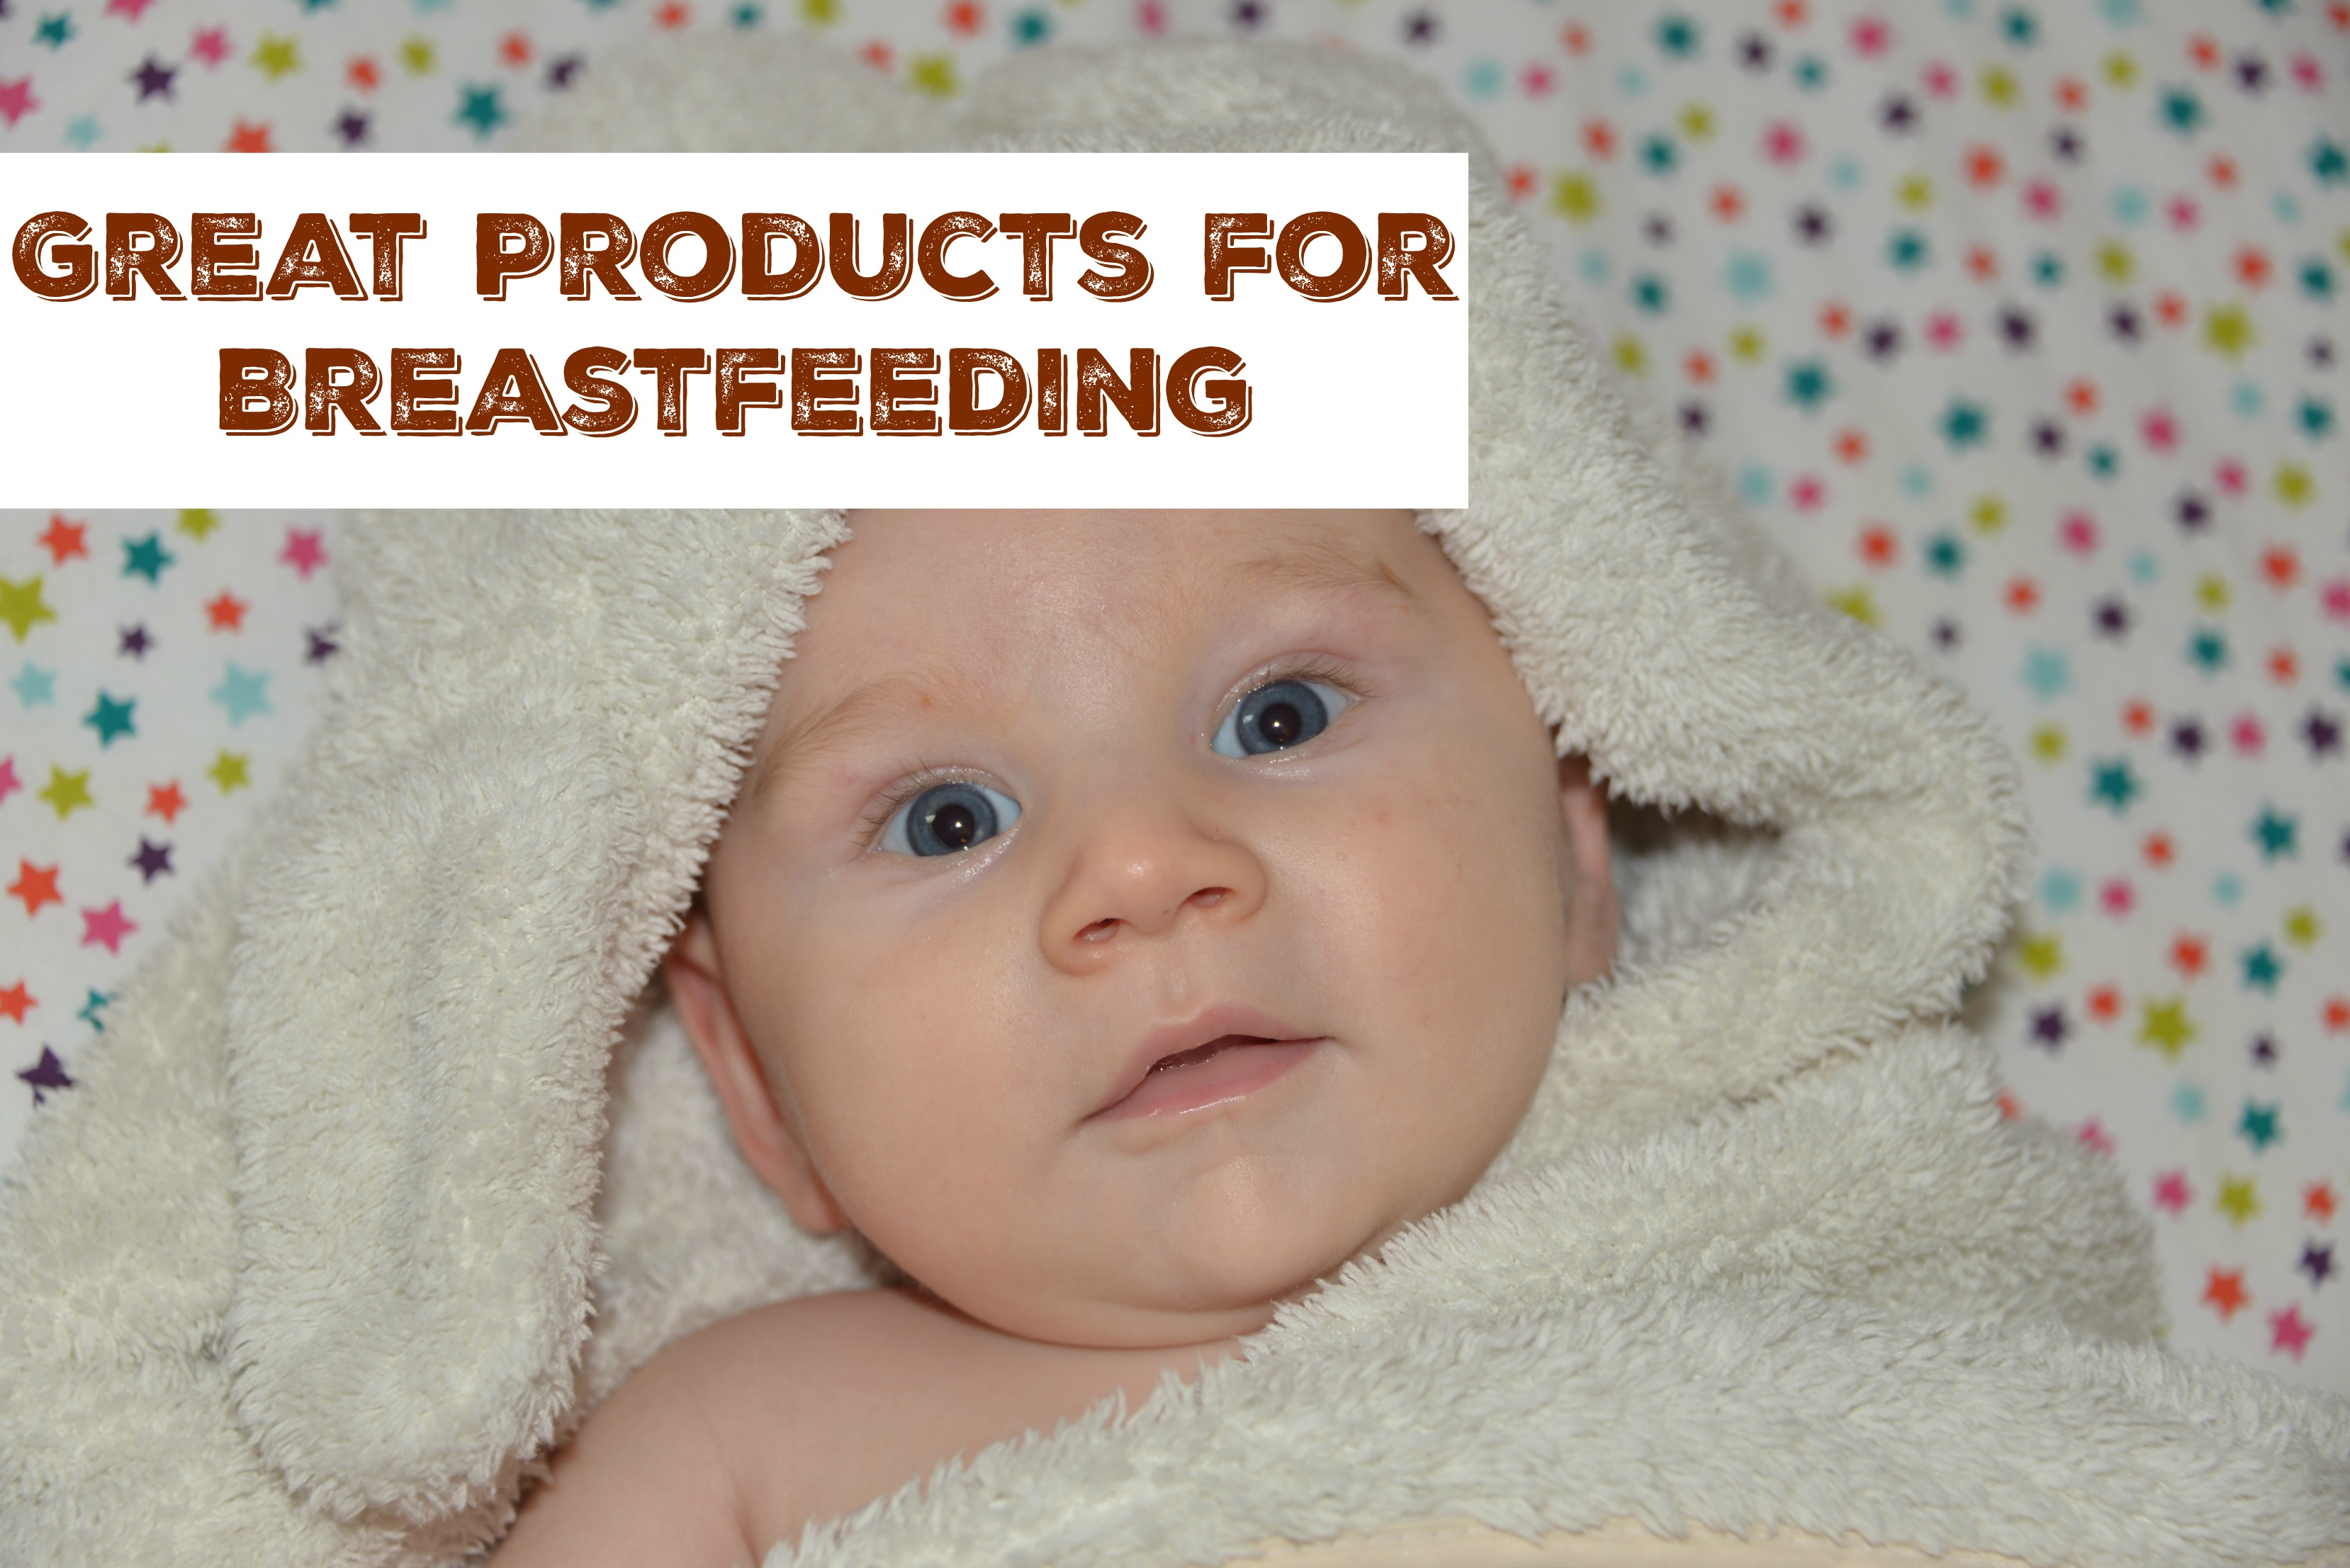 Great-product-for-breastfeeding